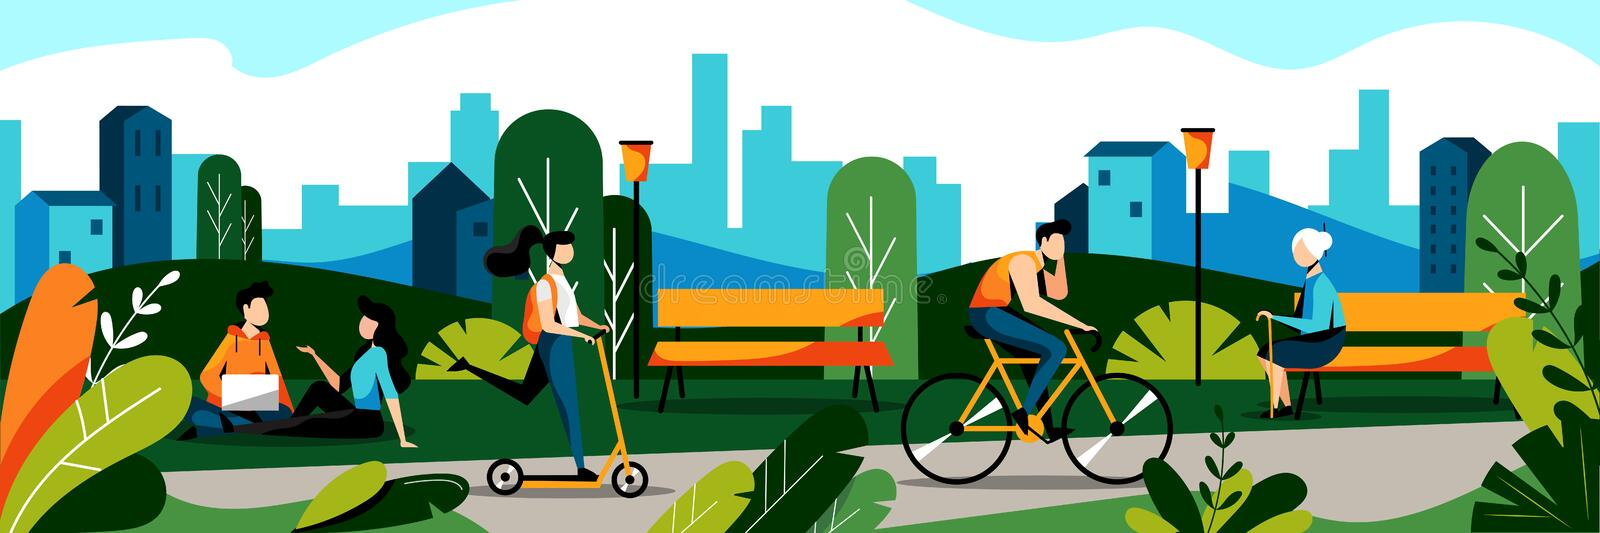 People in city park. Vector flat illustration. Spring and summer weekend leisure activity concept. Nature background stock illustration